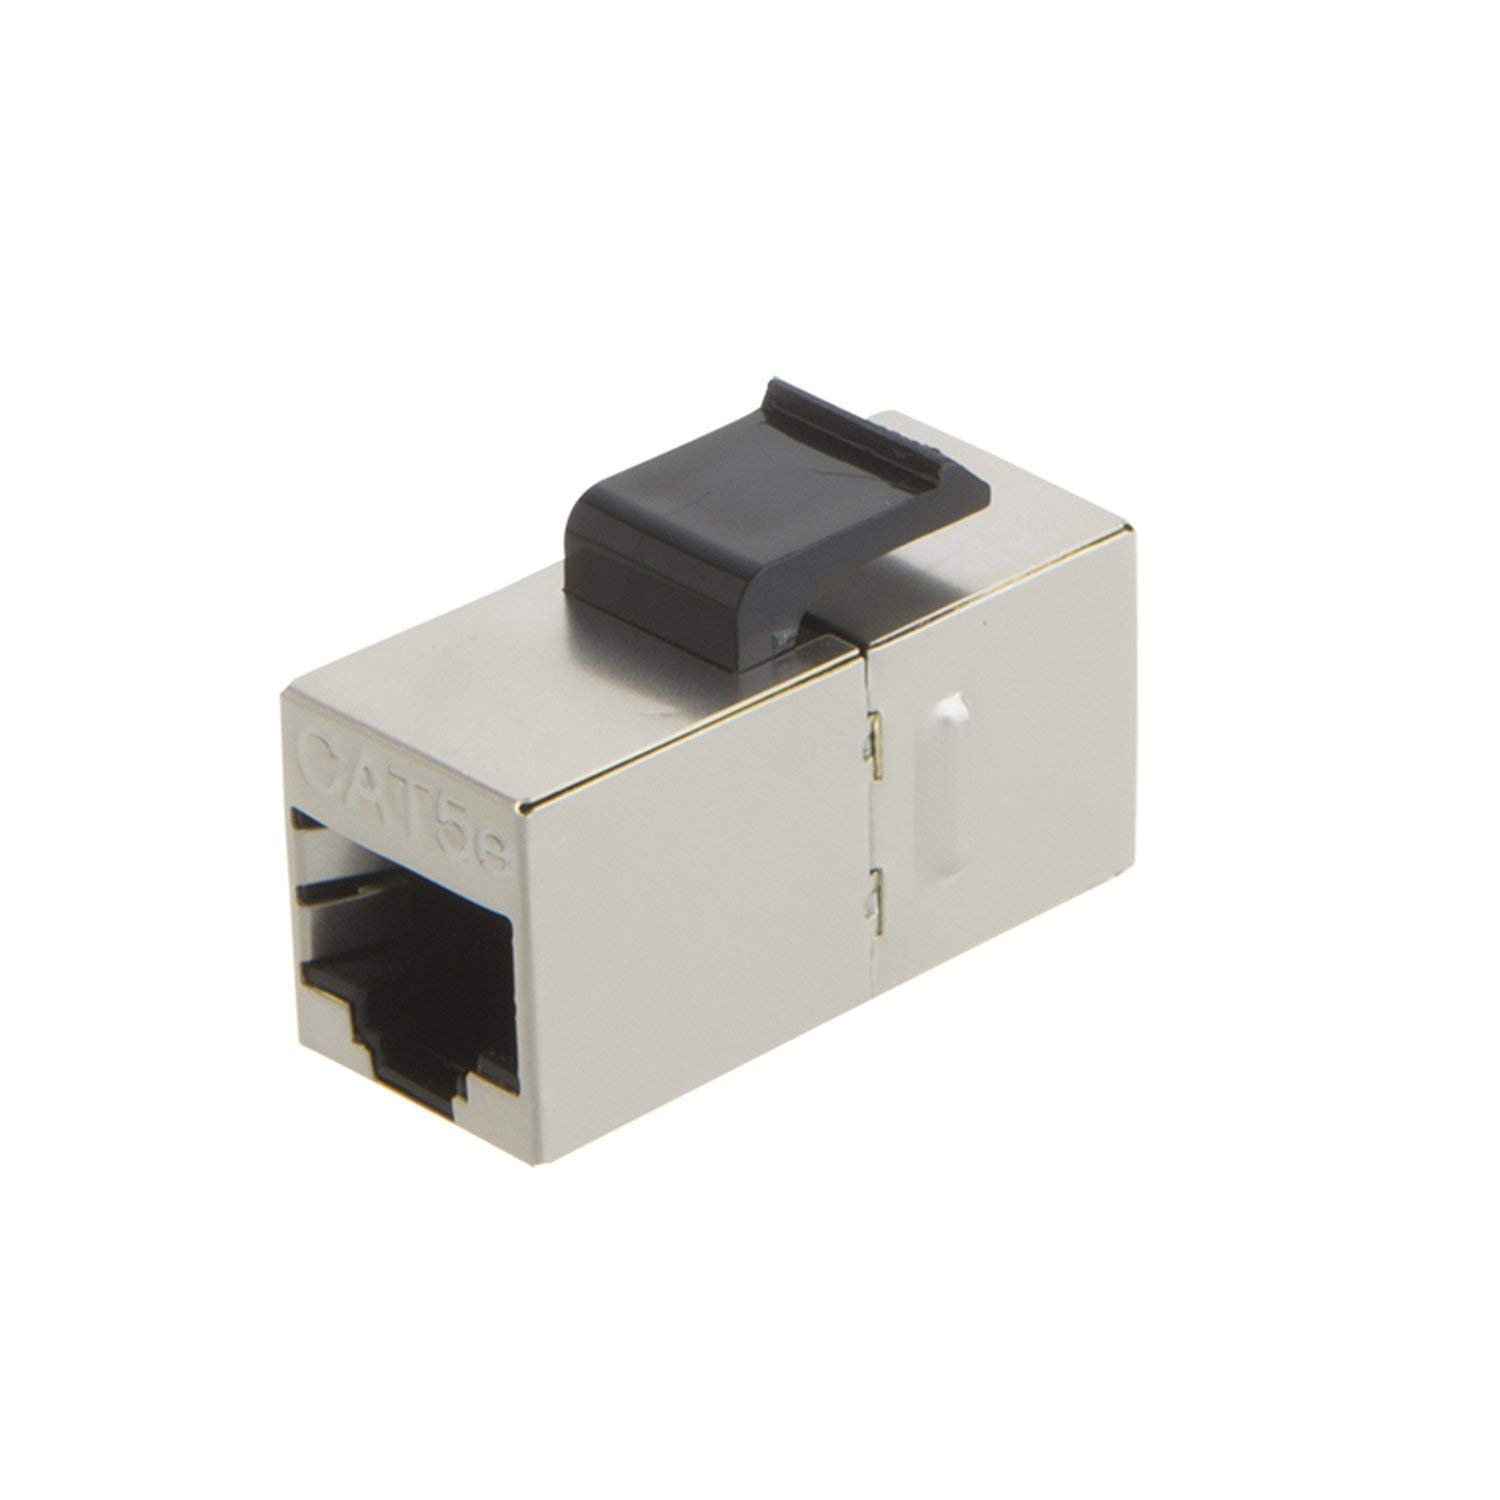 High Quality Lan Cord - RJ45 Keystone Jack, #CL0074 – CableCreation